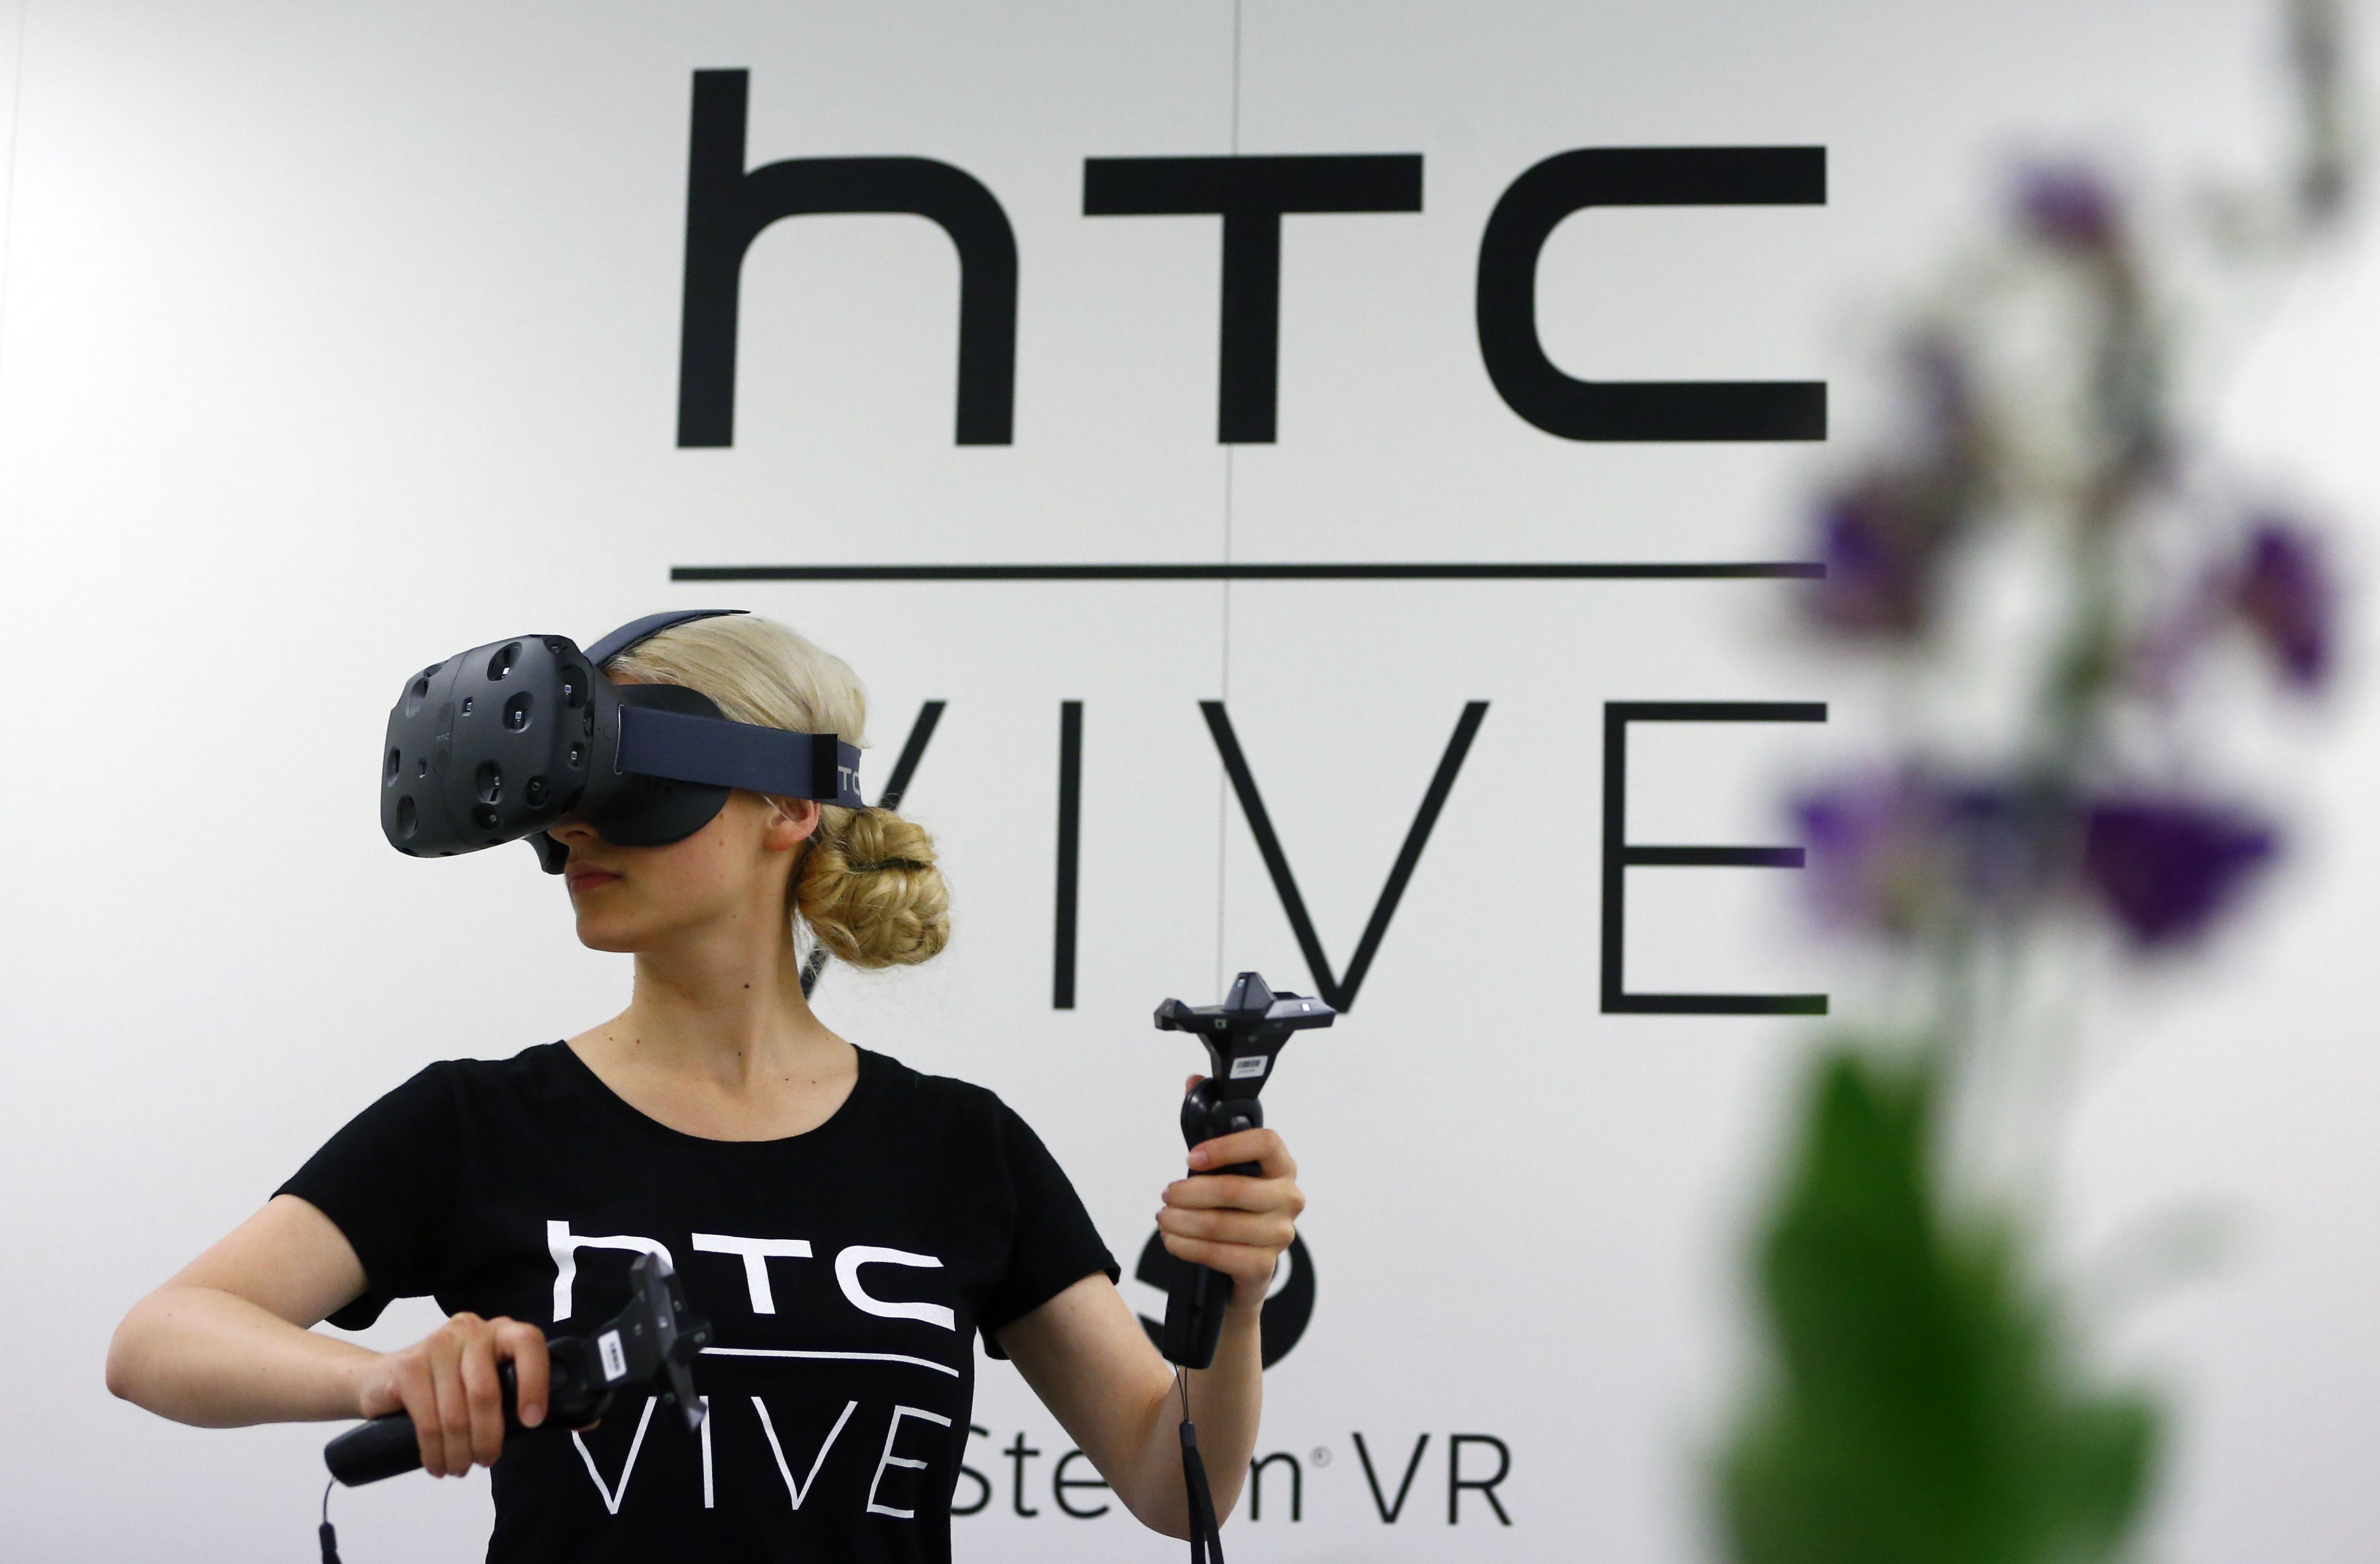 HTC Vive announcement at CES 2016